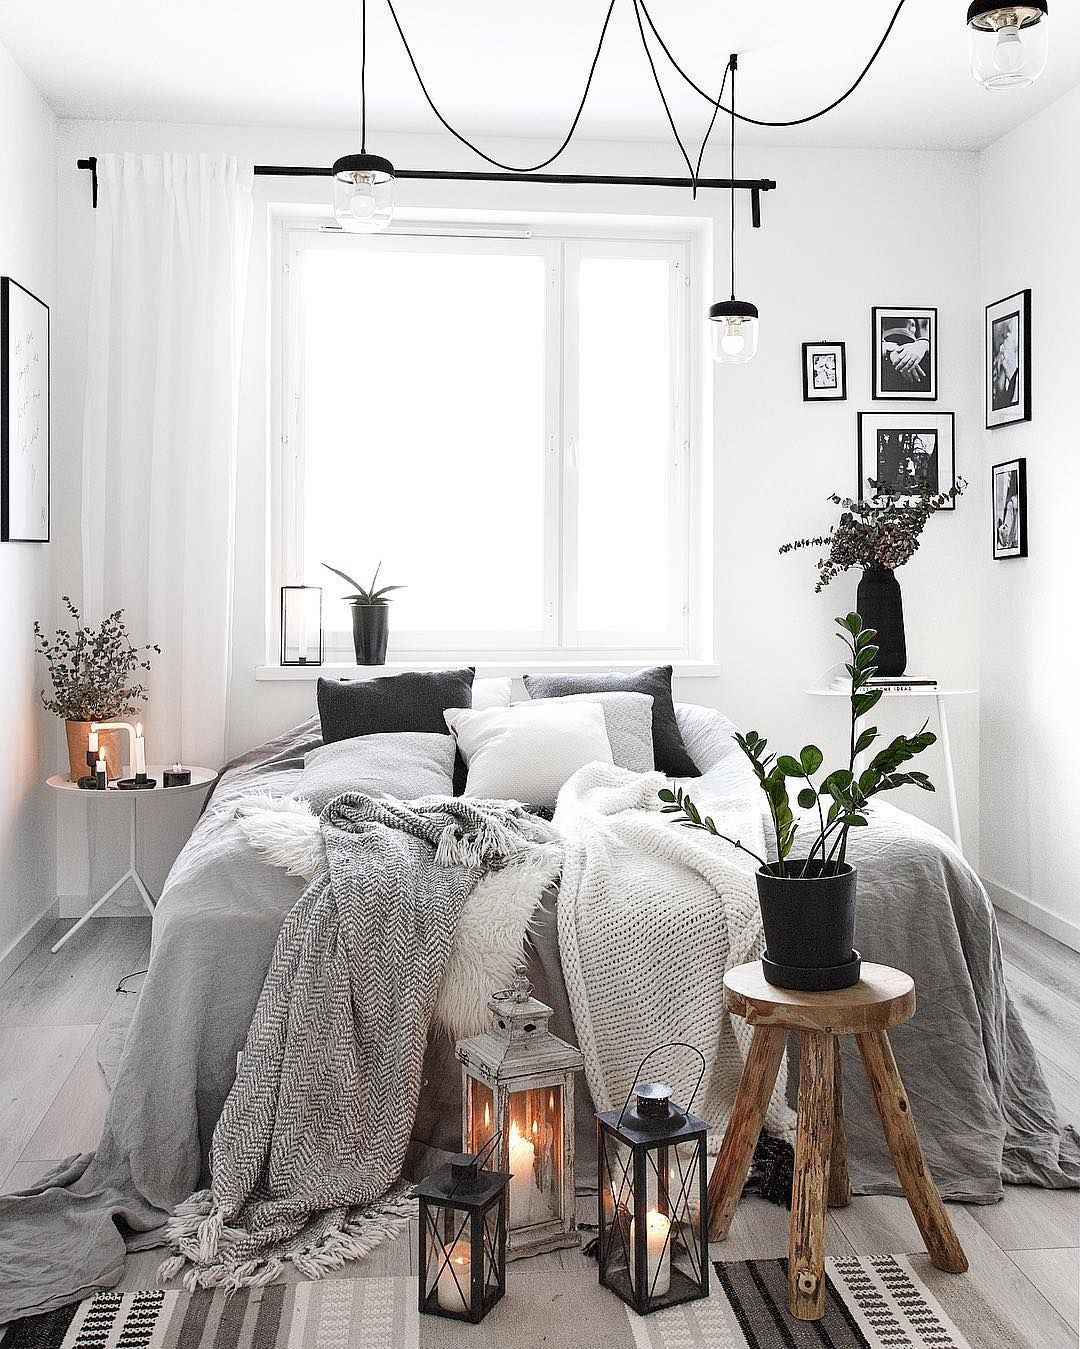 Cozy modern bedroom in shades of grey.  White bedroom decor